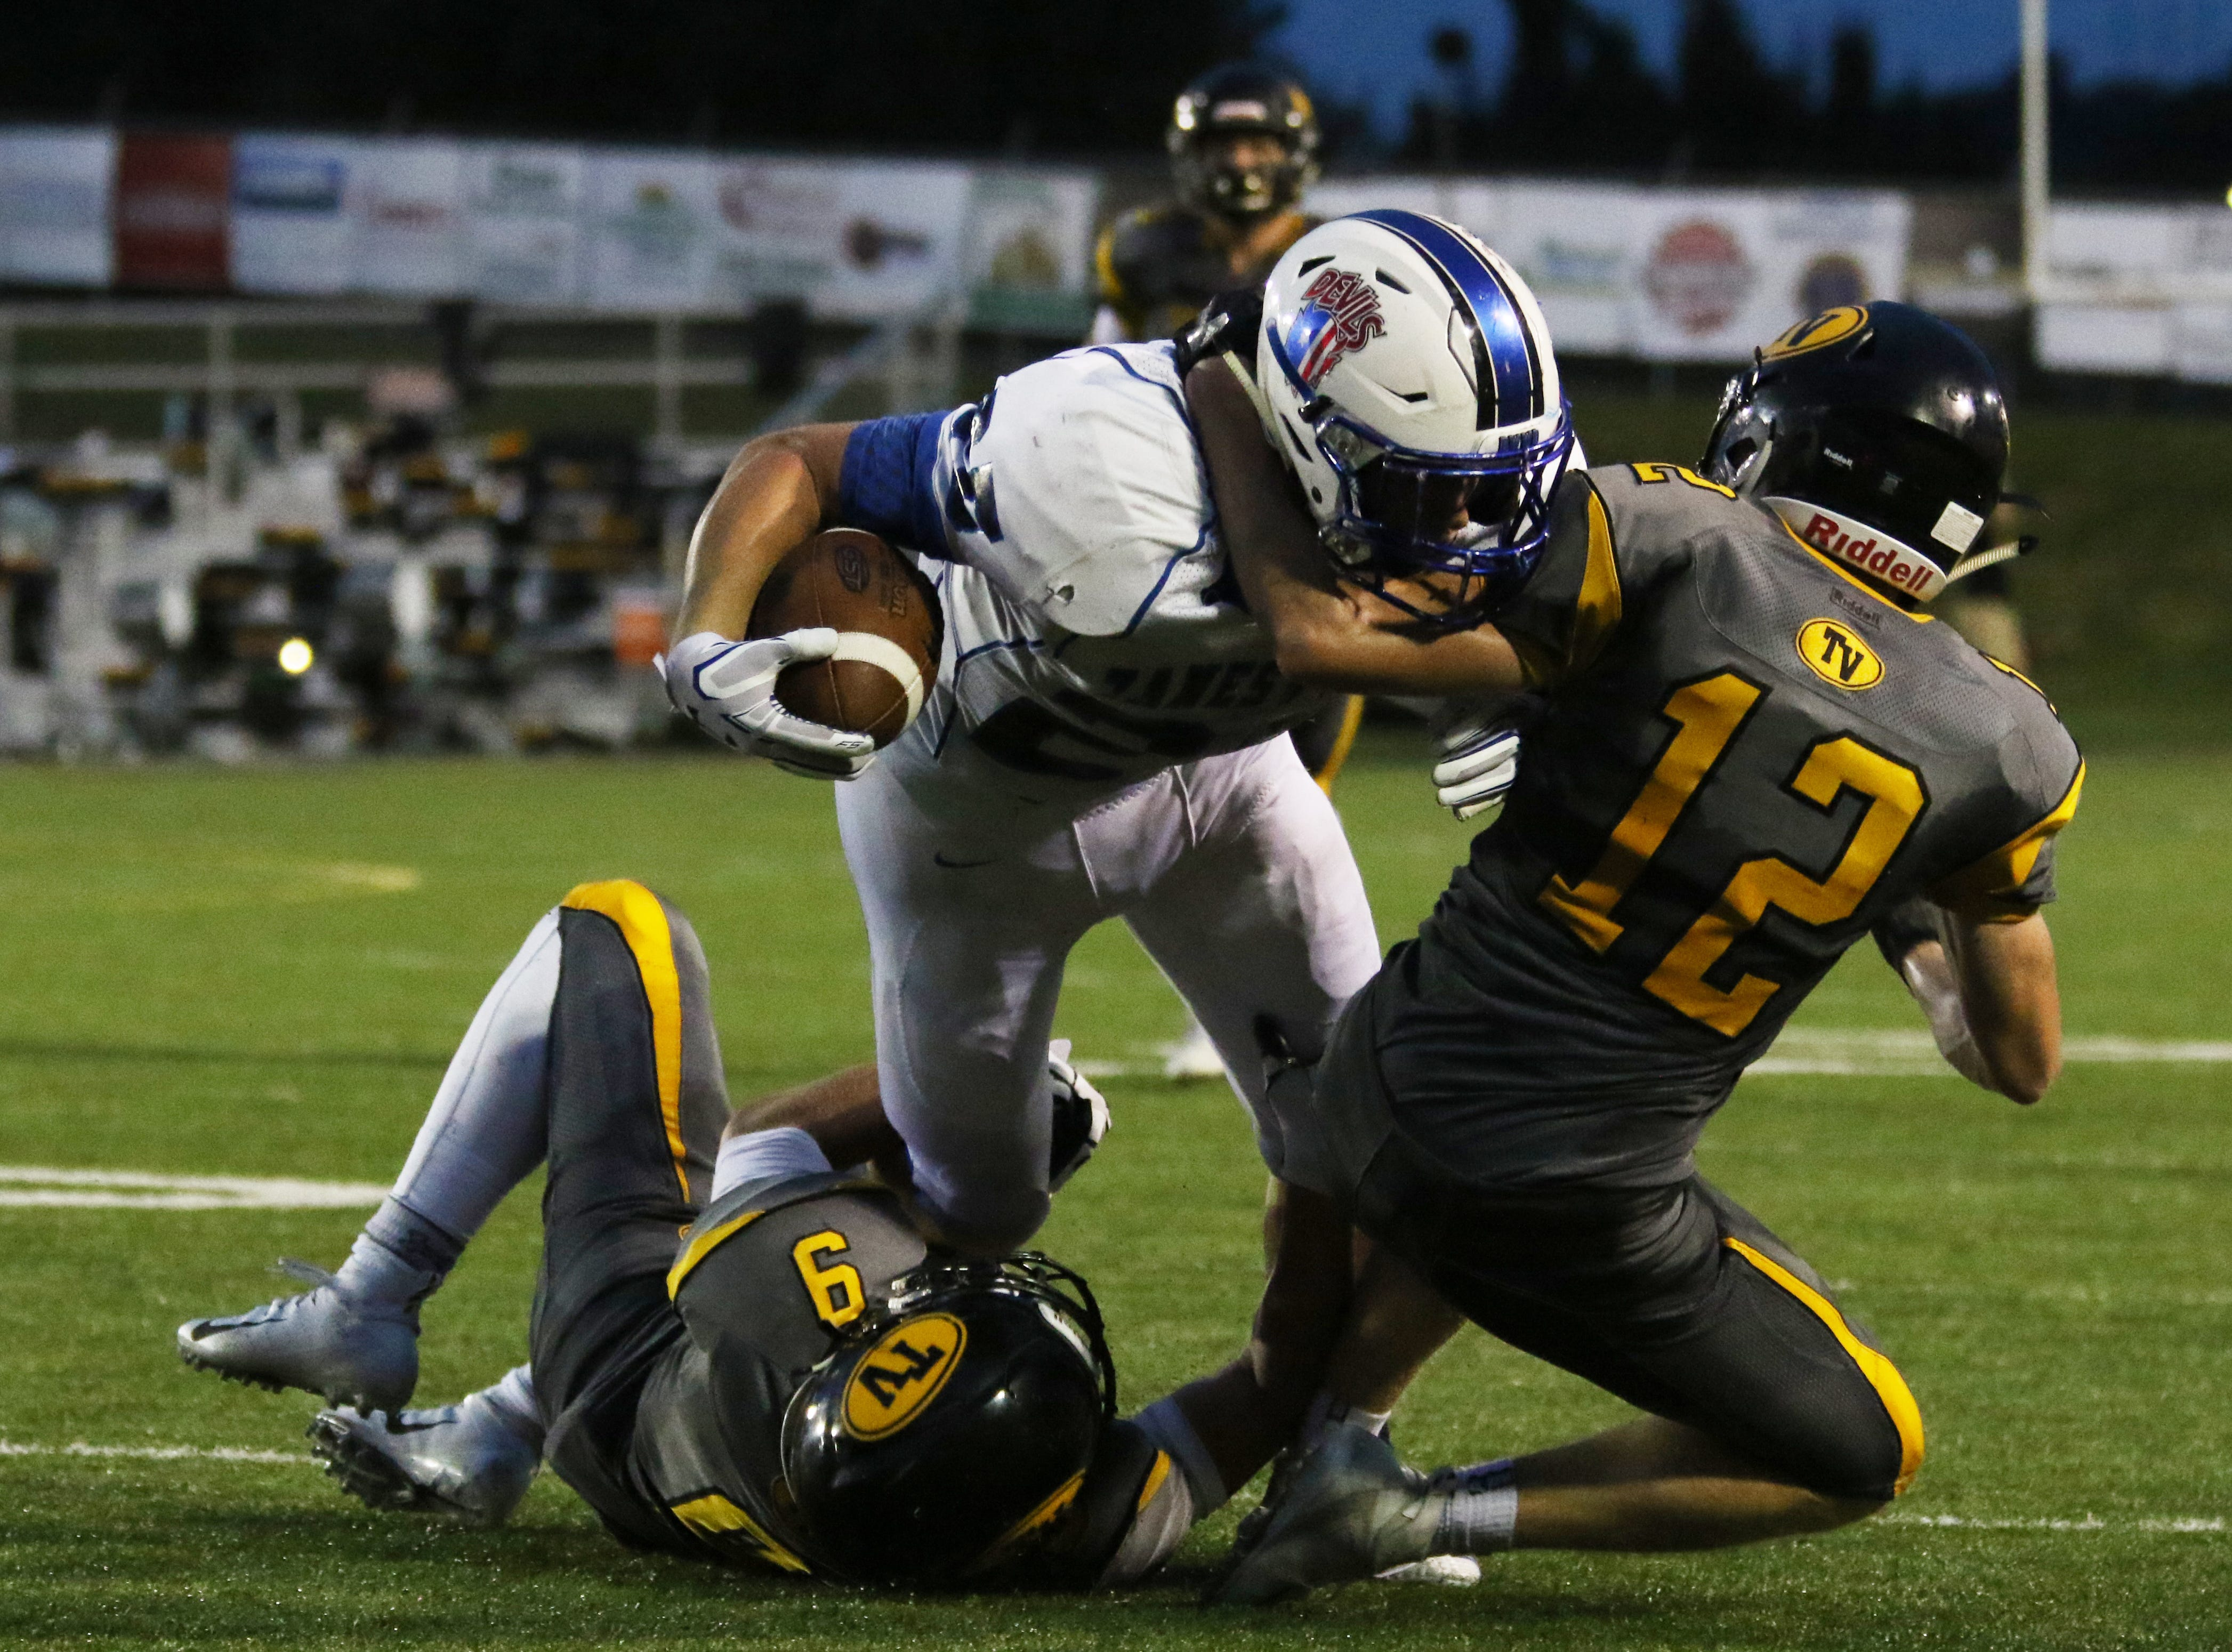 Tri-Valley's Graham Cameron (12) and Sam Slaboden tackle Zanesville's Dkker Davis.